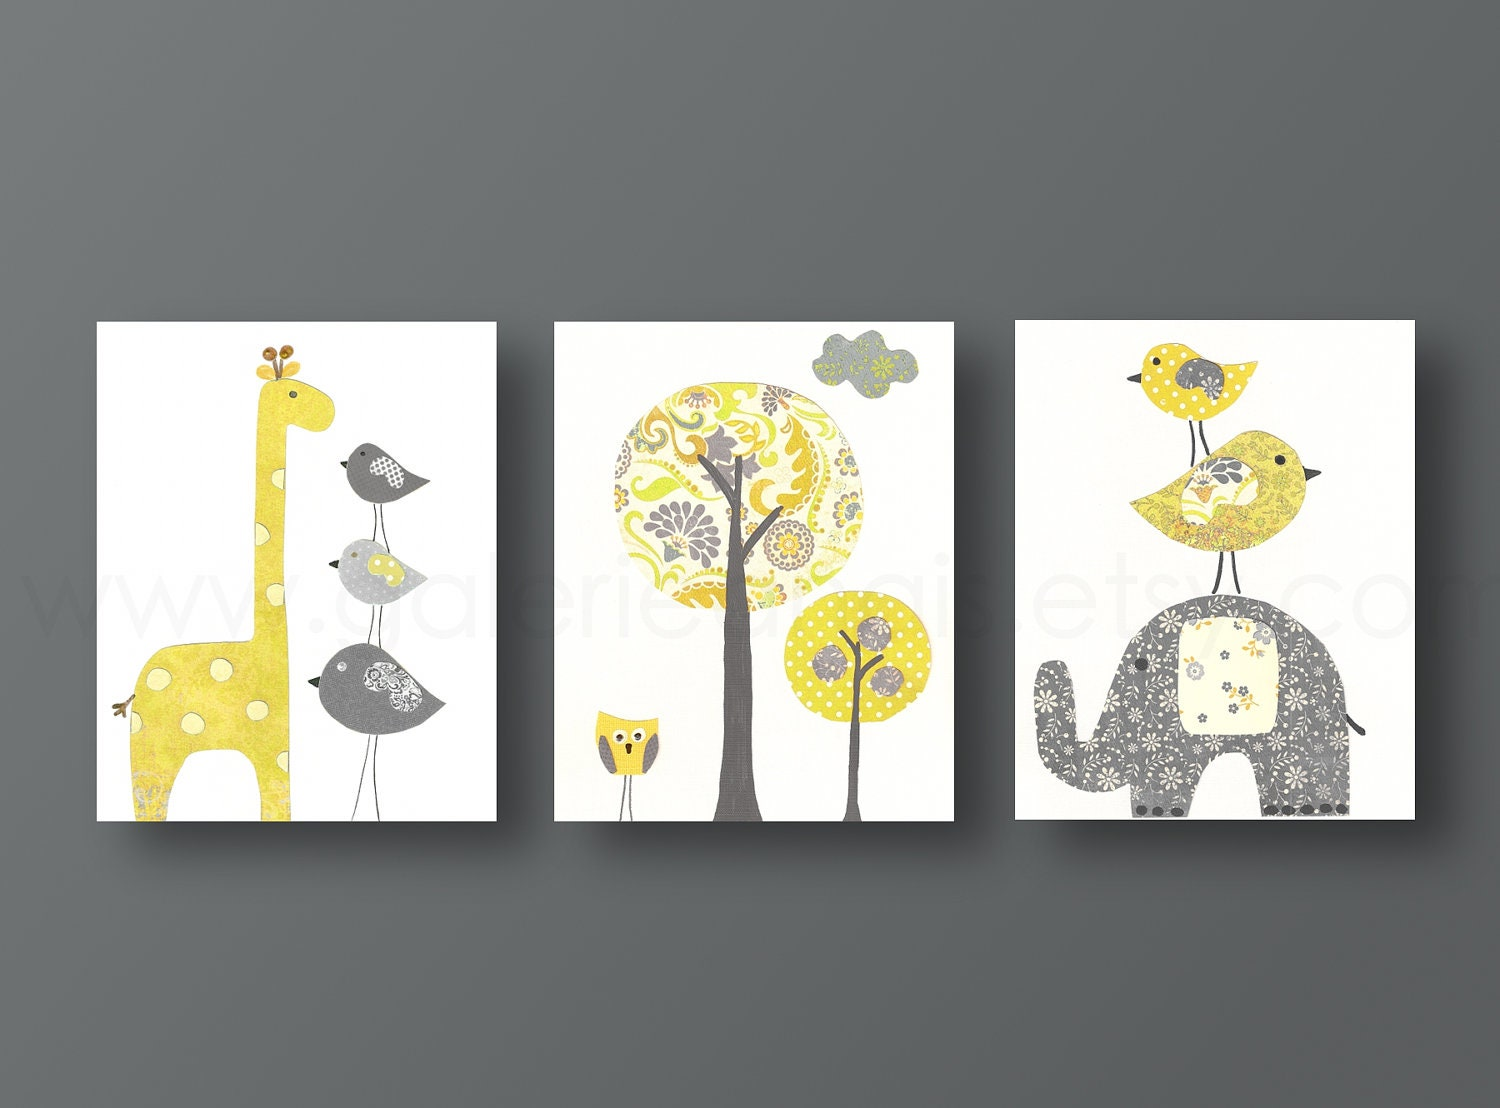 Wall Art For Nursery Ideas : Yellow gray nursery art baby decor kids wall